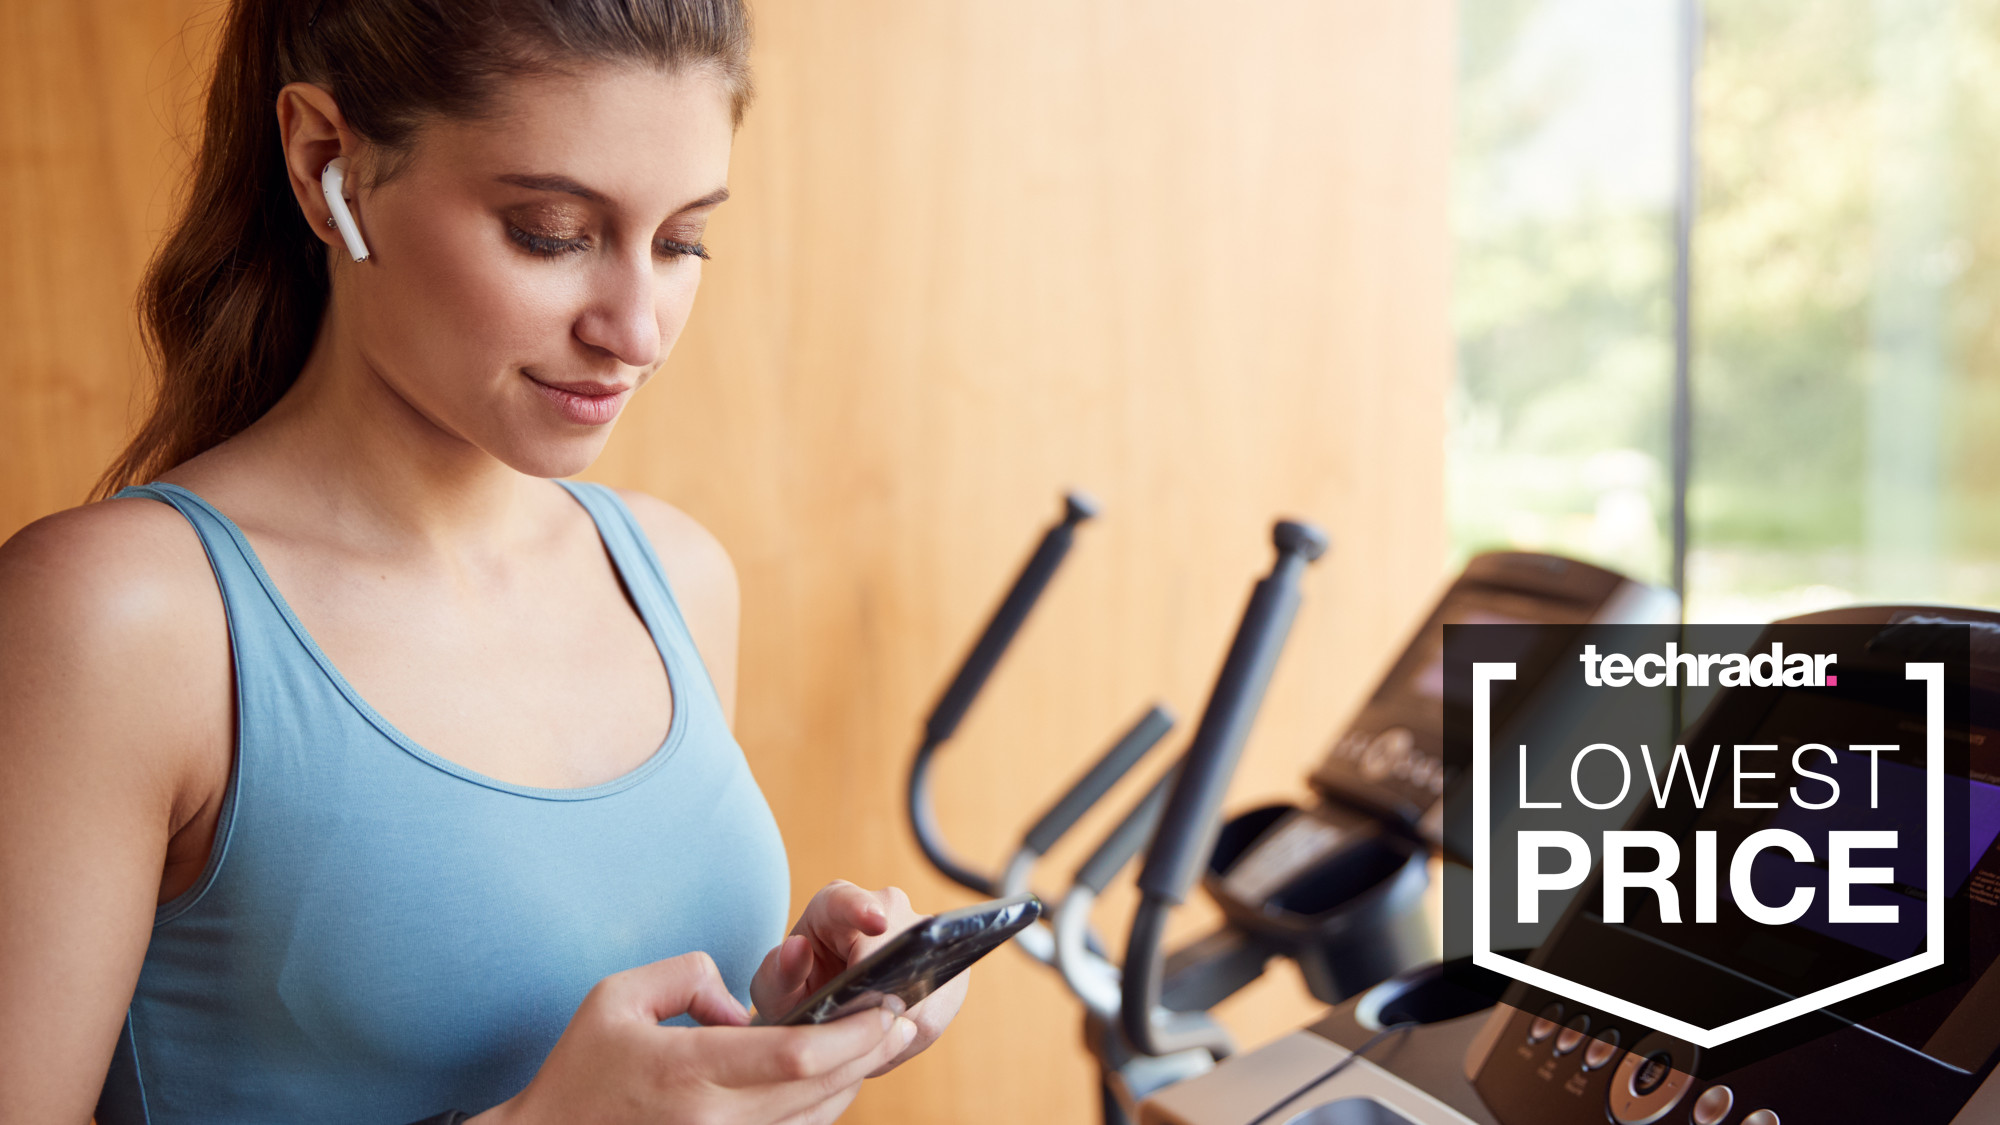 Home exercise equipment: where to get treadmills, exercise bikes and more